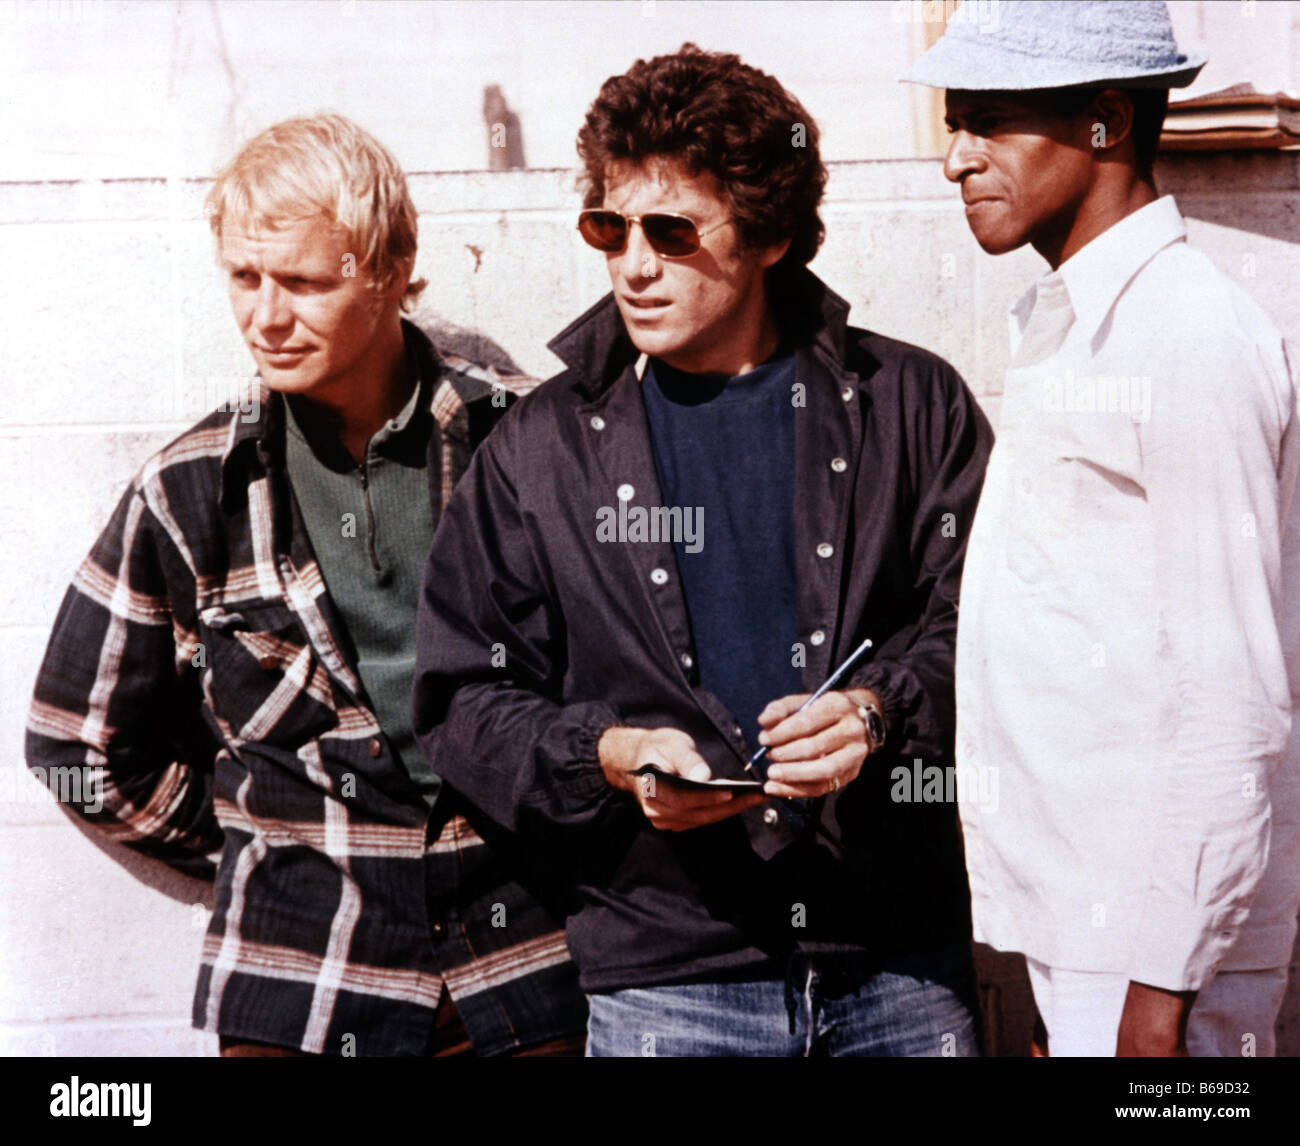 starsky and hutch us tv series 1975 1979 from l david soul hutch stock photo royalty free. Black Bedroom Furniture Sets. Home Design Ideas